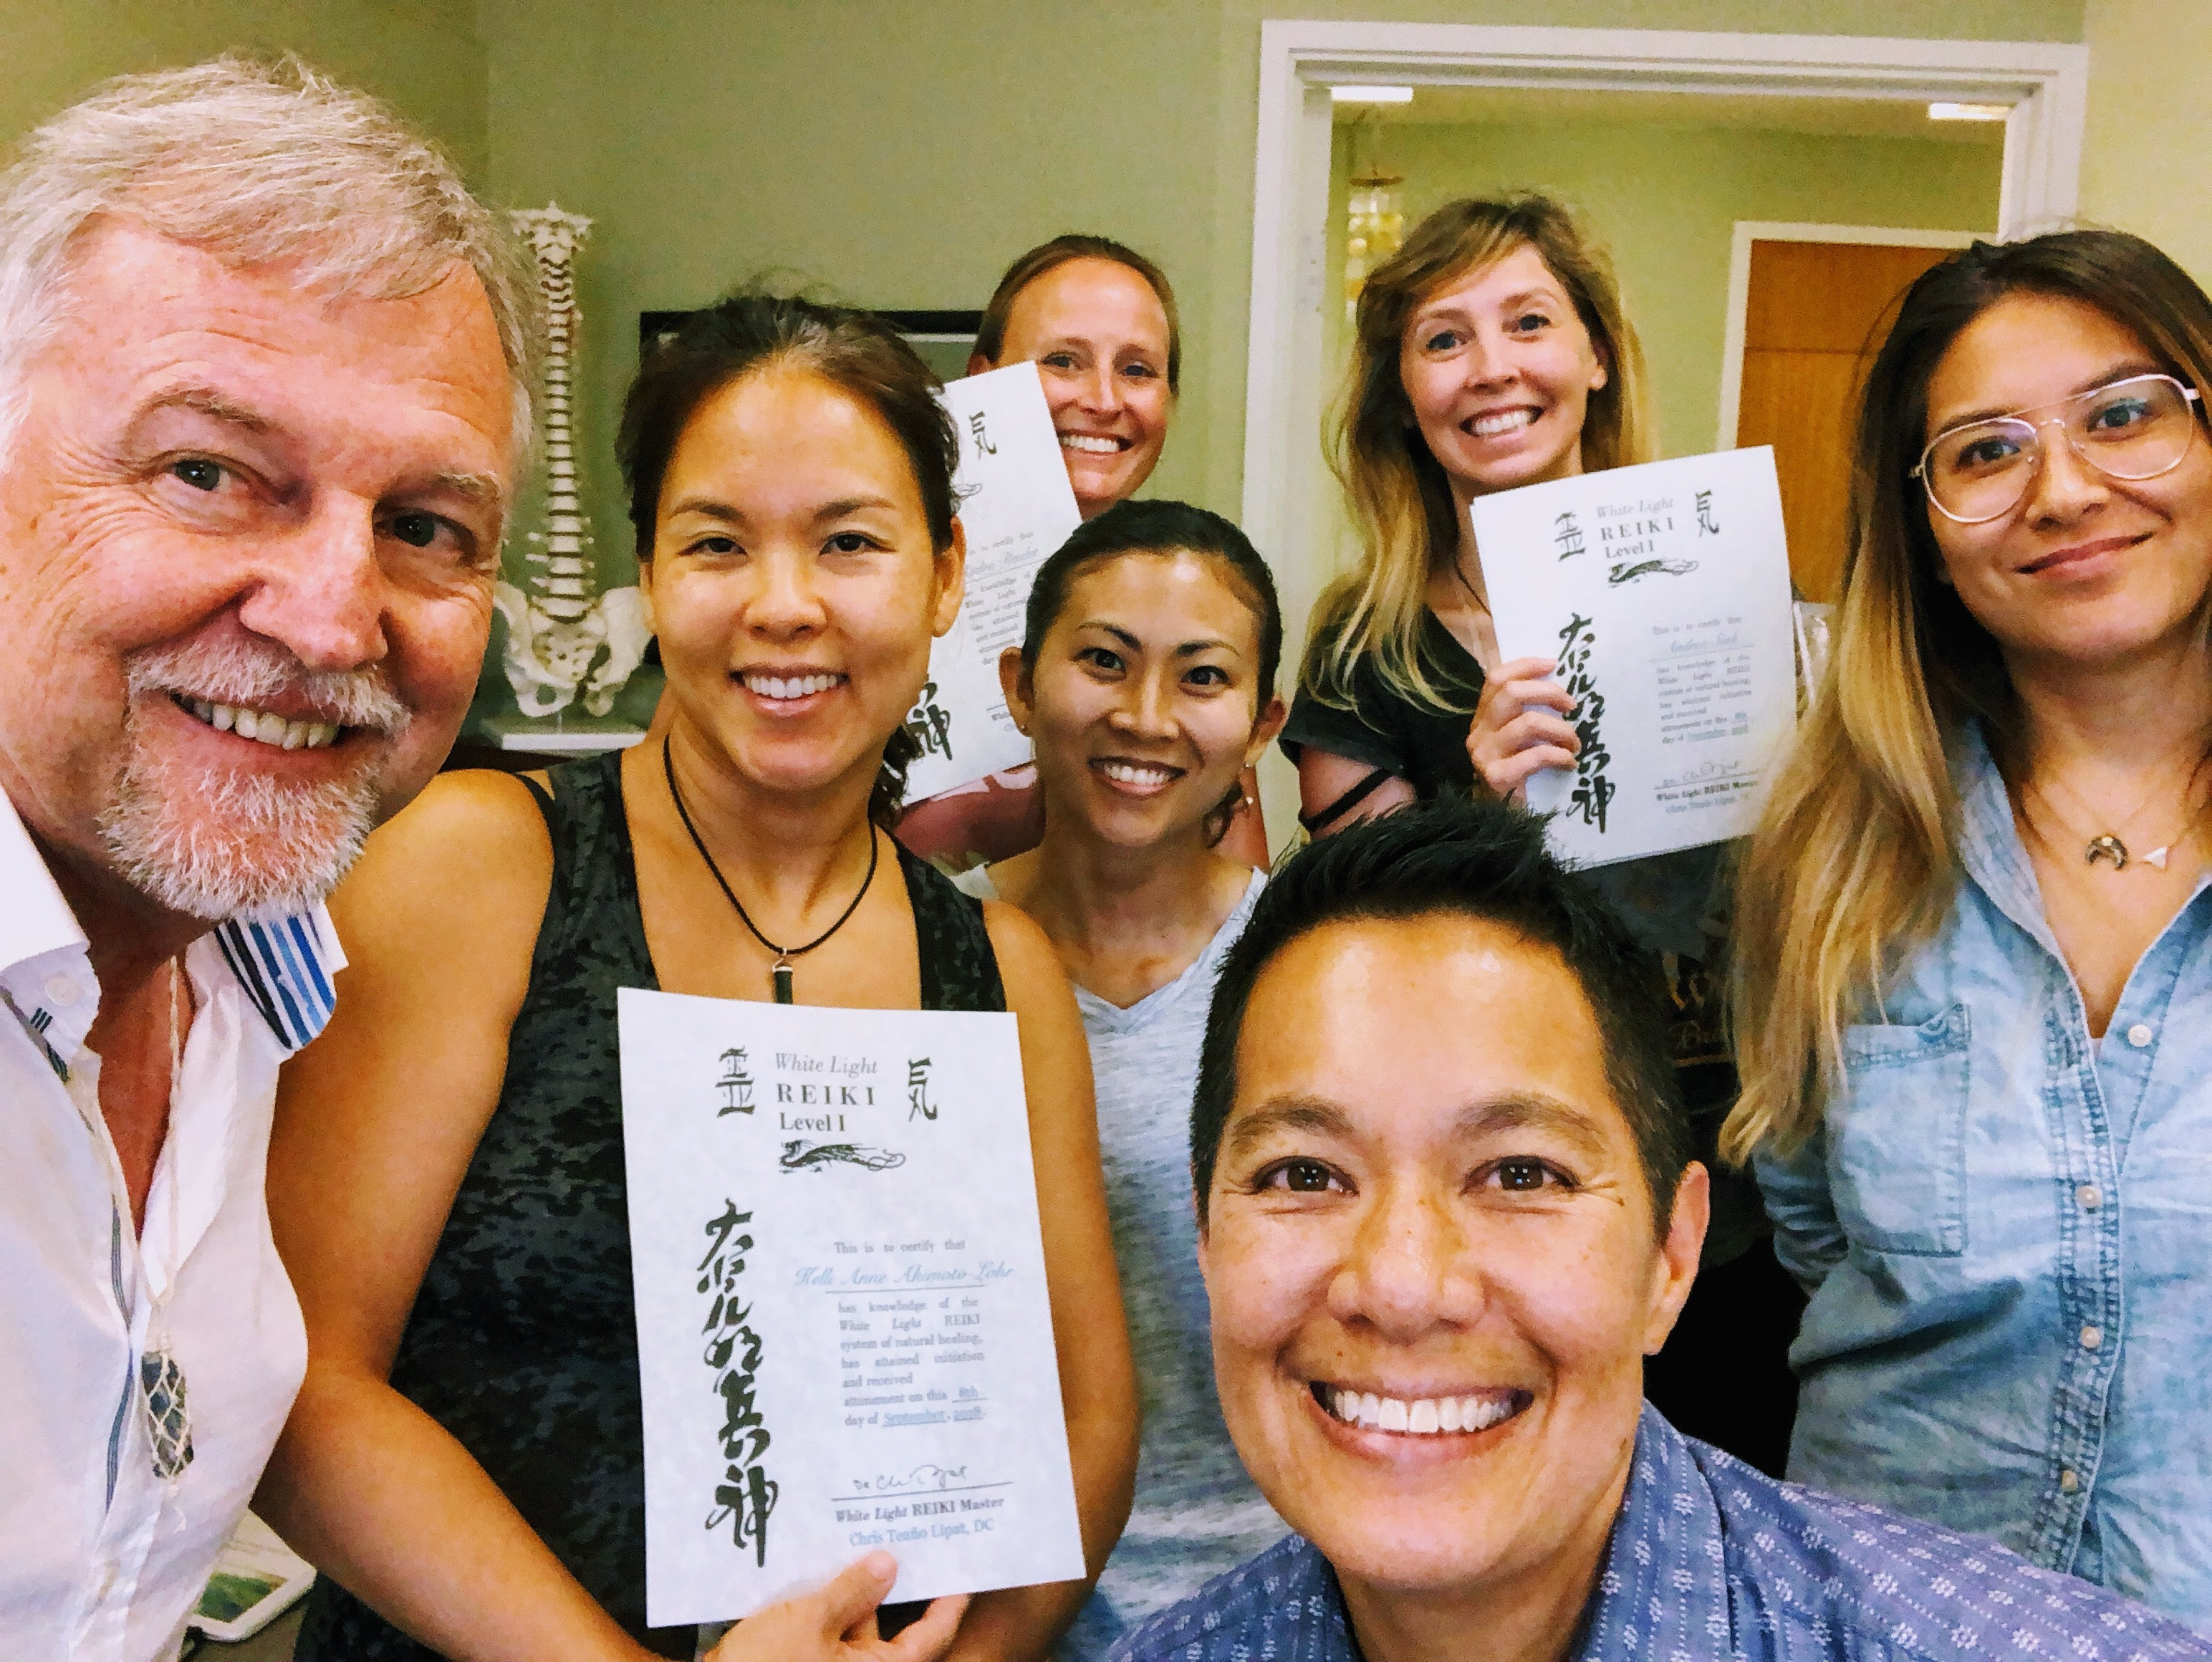 Dr. Chris Lipat teaches Reiki in Honolulu